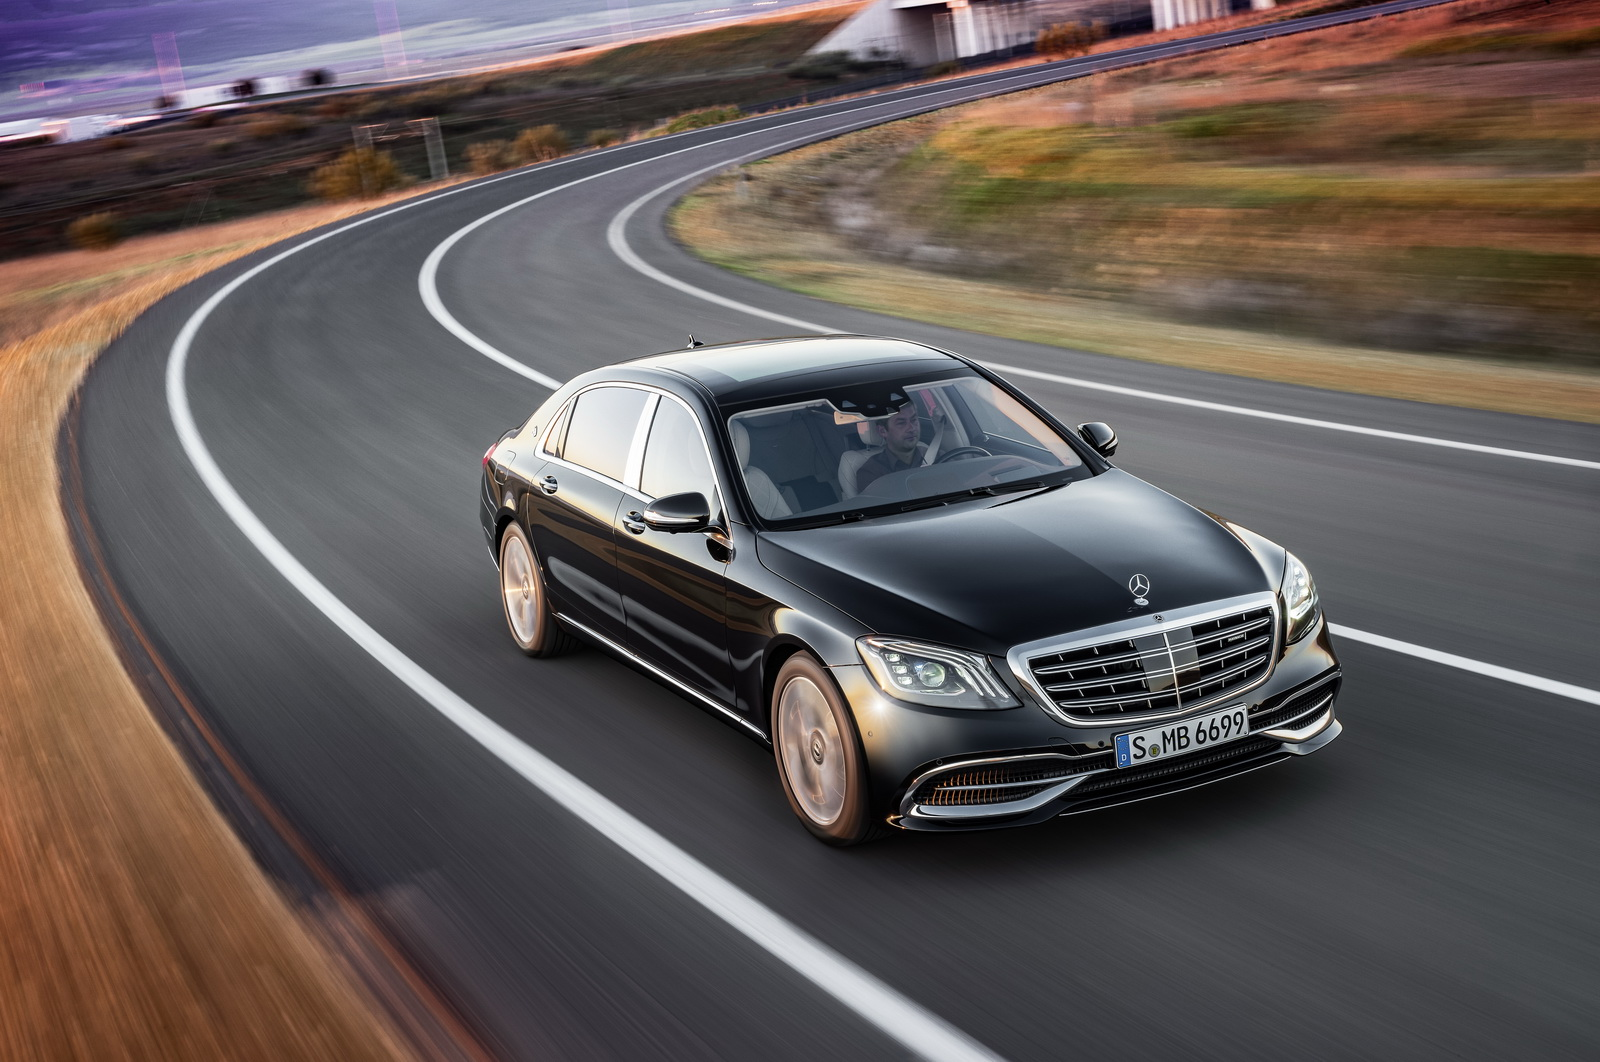 2018 mercedes benz s class priced from under 91k for How much mercedes benz cost